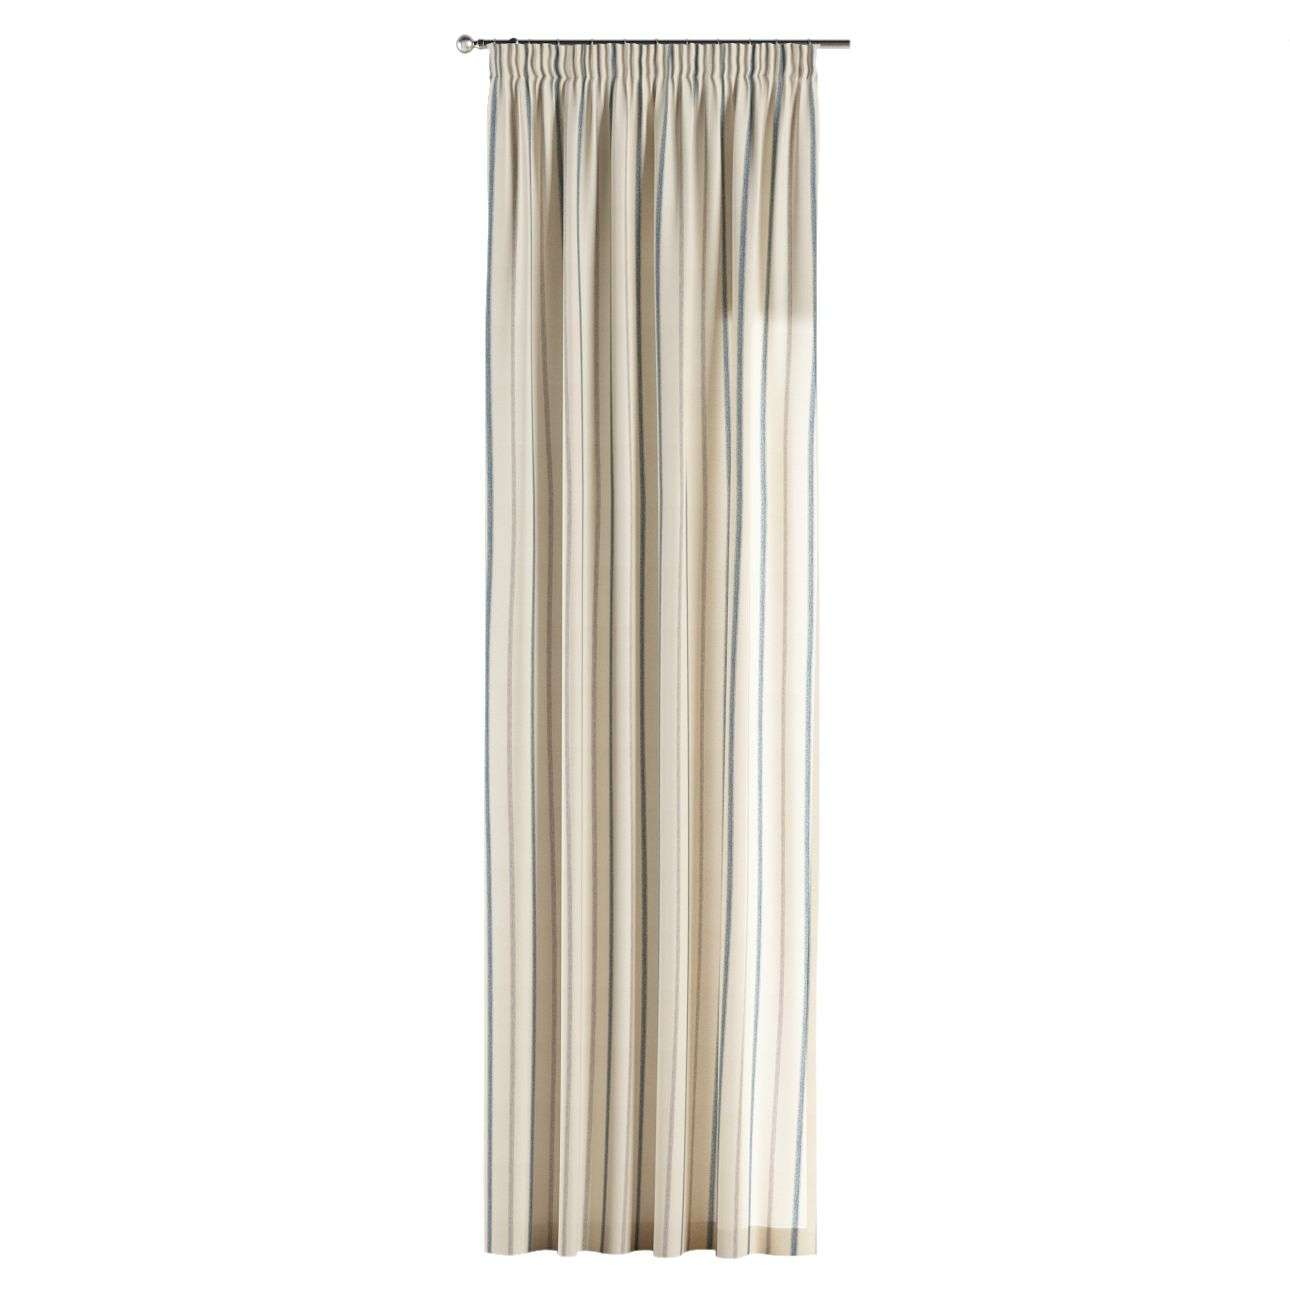 Pencil pleat curtains 130 × 260 cm (51 × 102 inch) in collection Avinon, fabric: 129-66